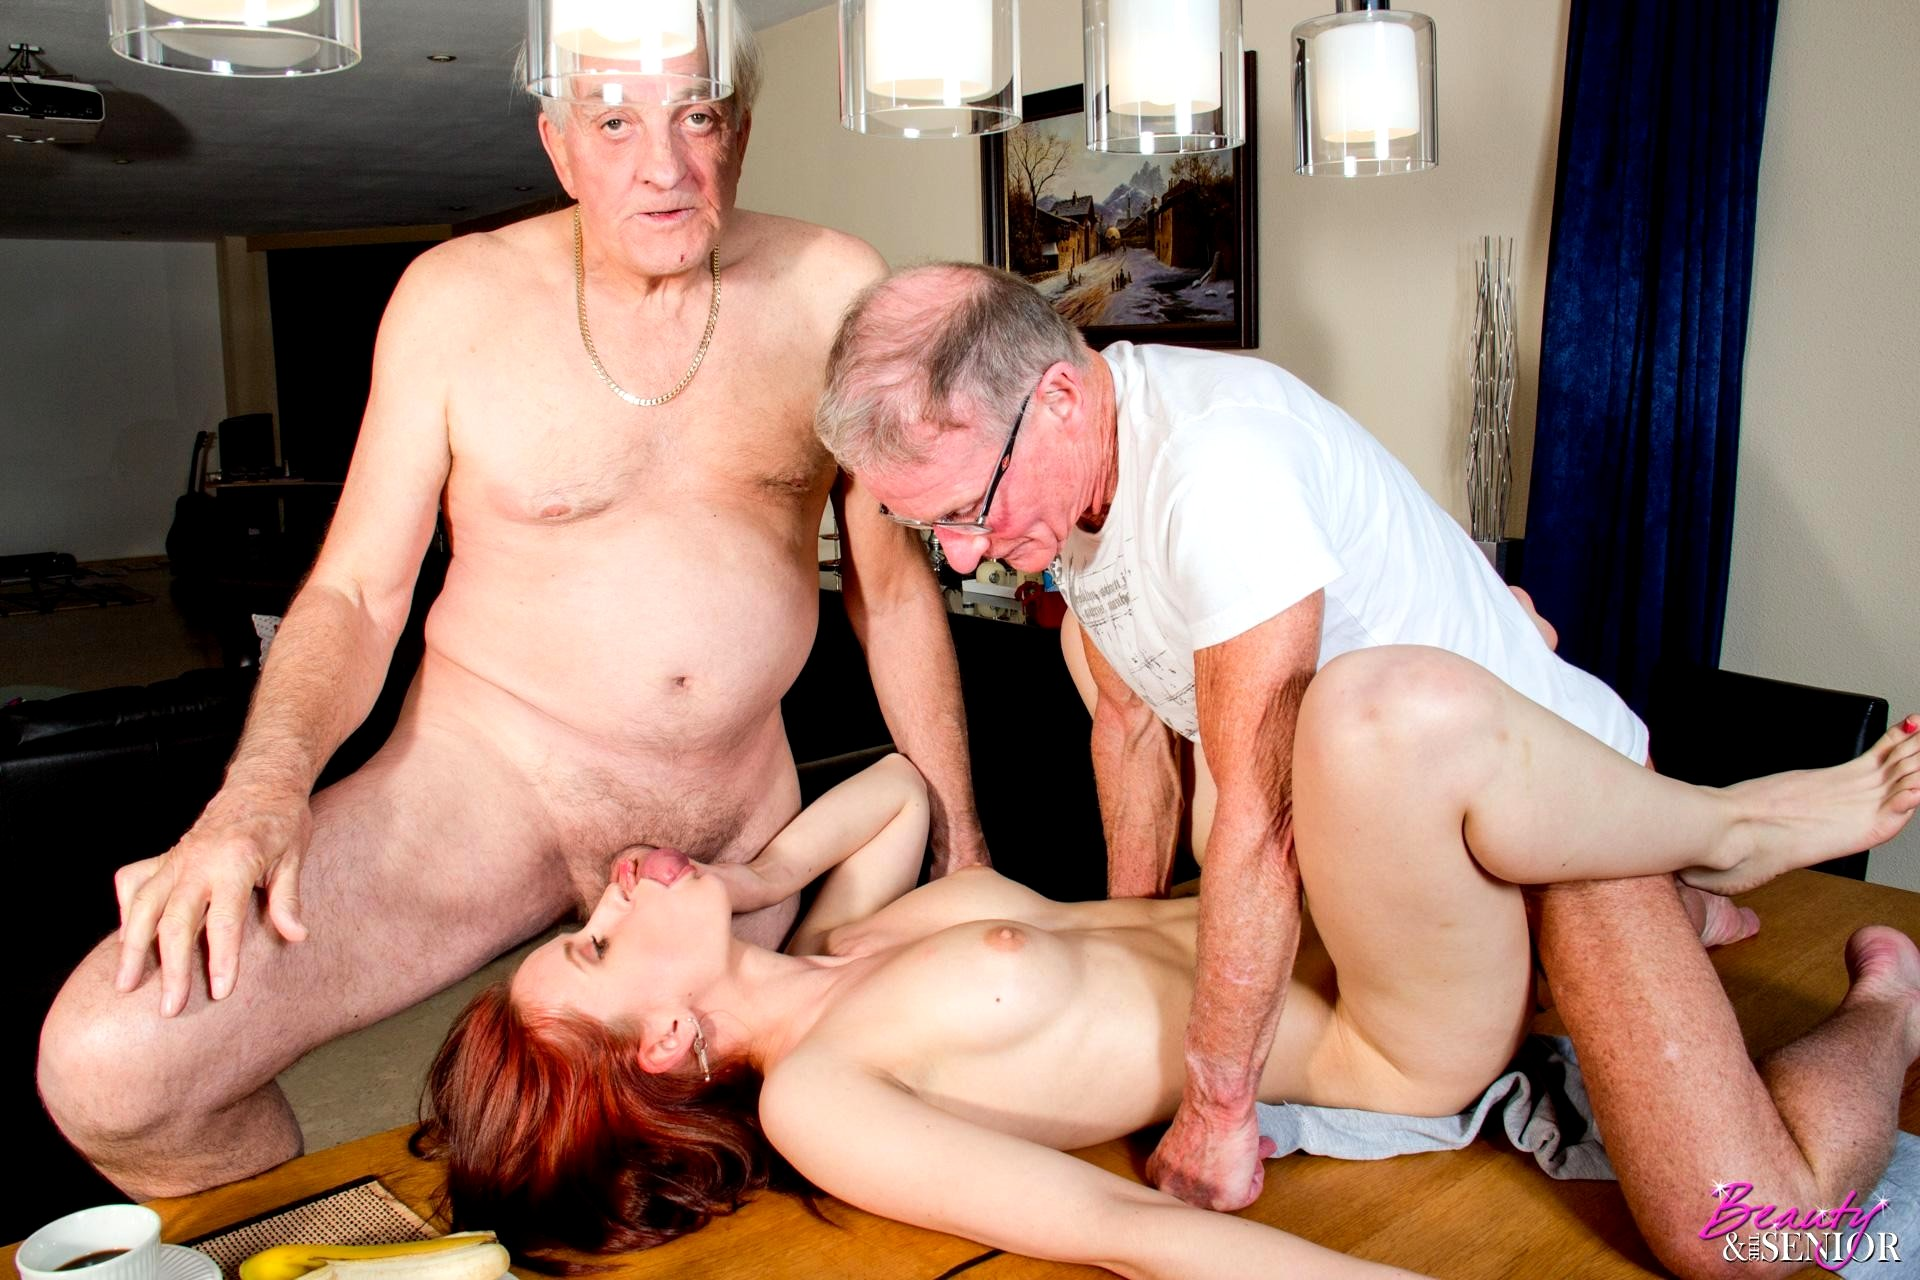 Men that old man young women porn jerk